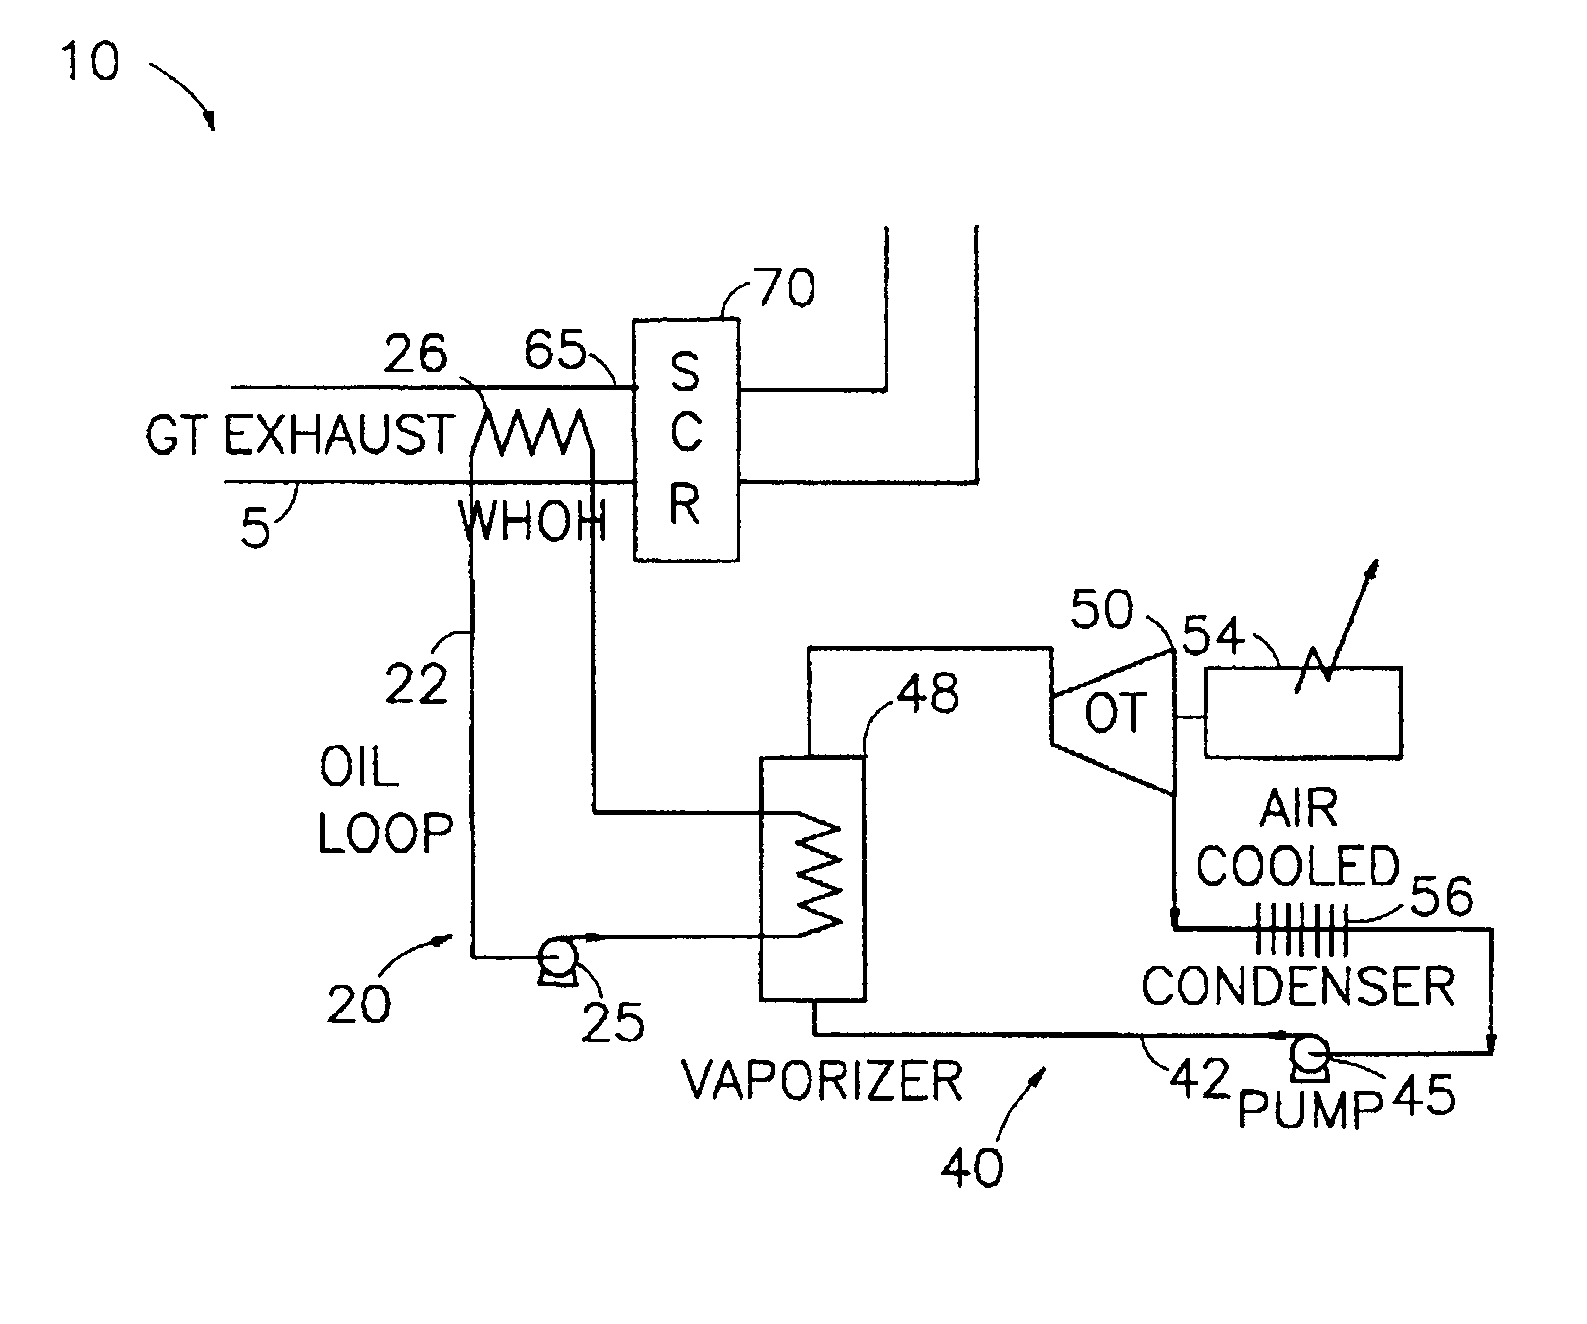 Patent US Gas turbine exhaust gas cooling system Google